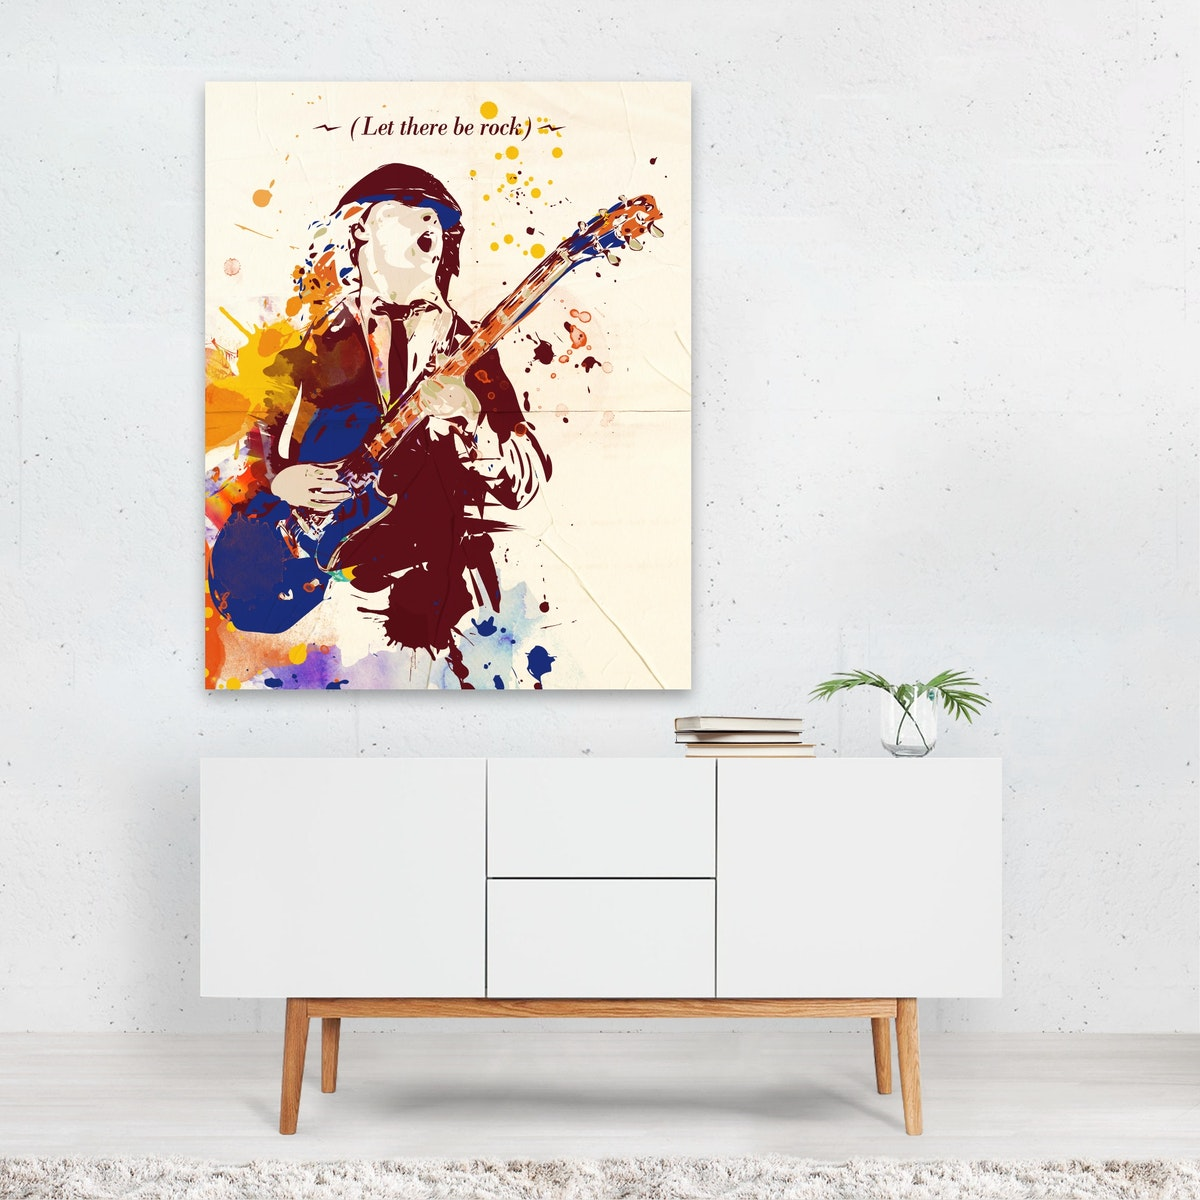 Acdc Angus Young pop art style print